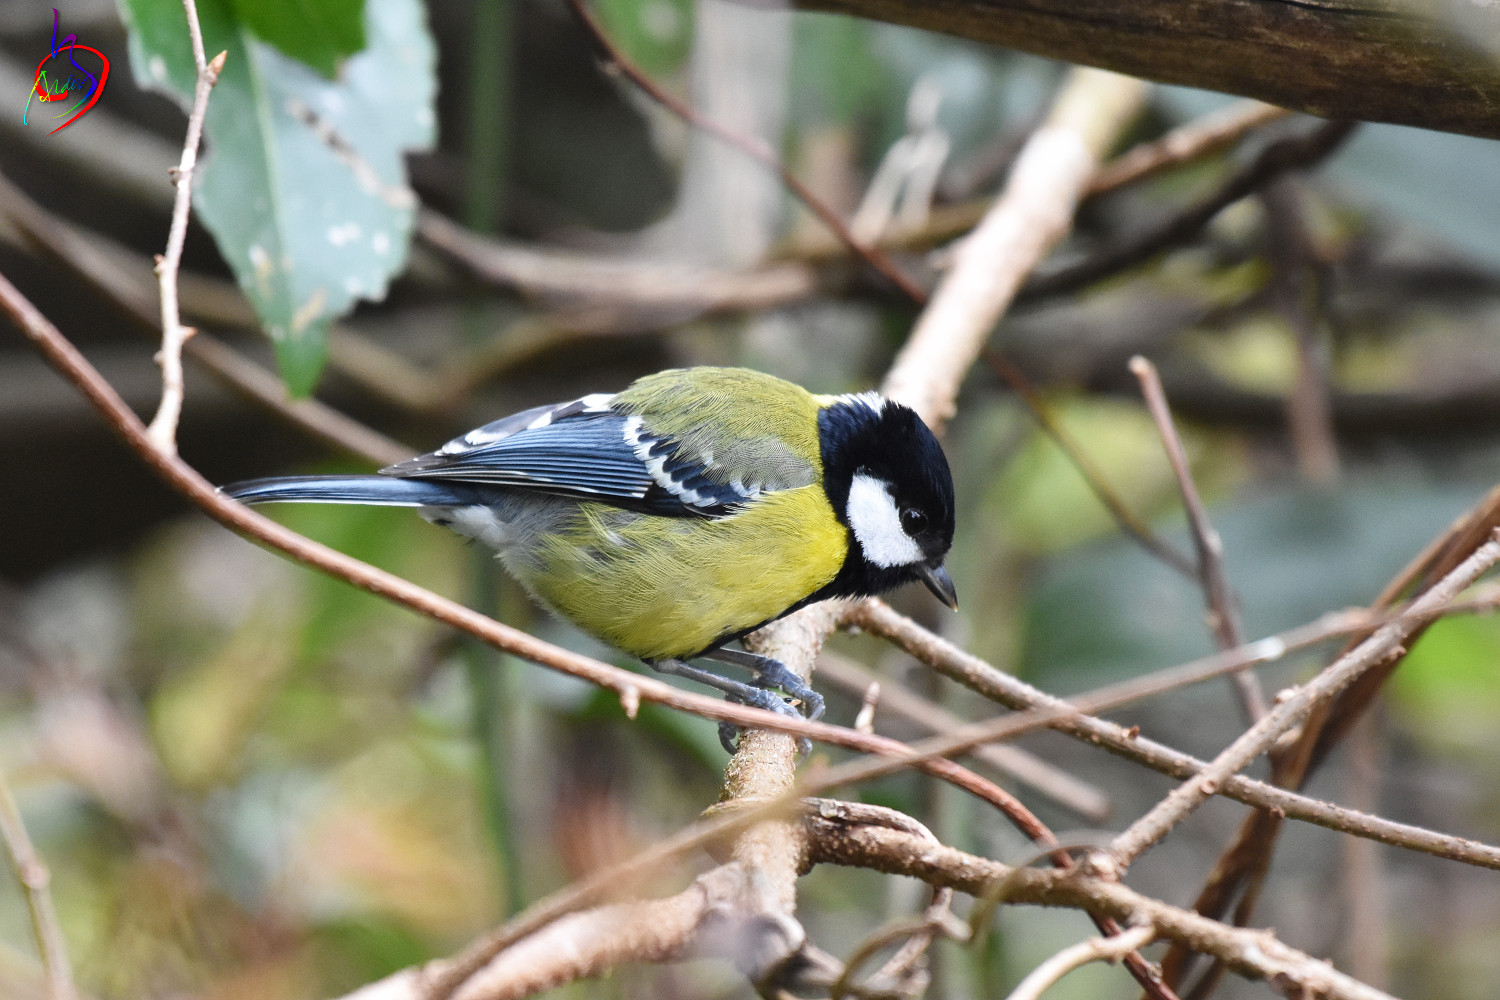 Green-backed_Tit_4181